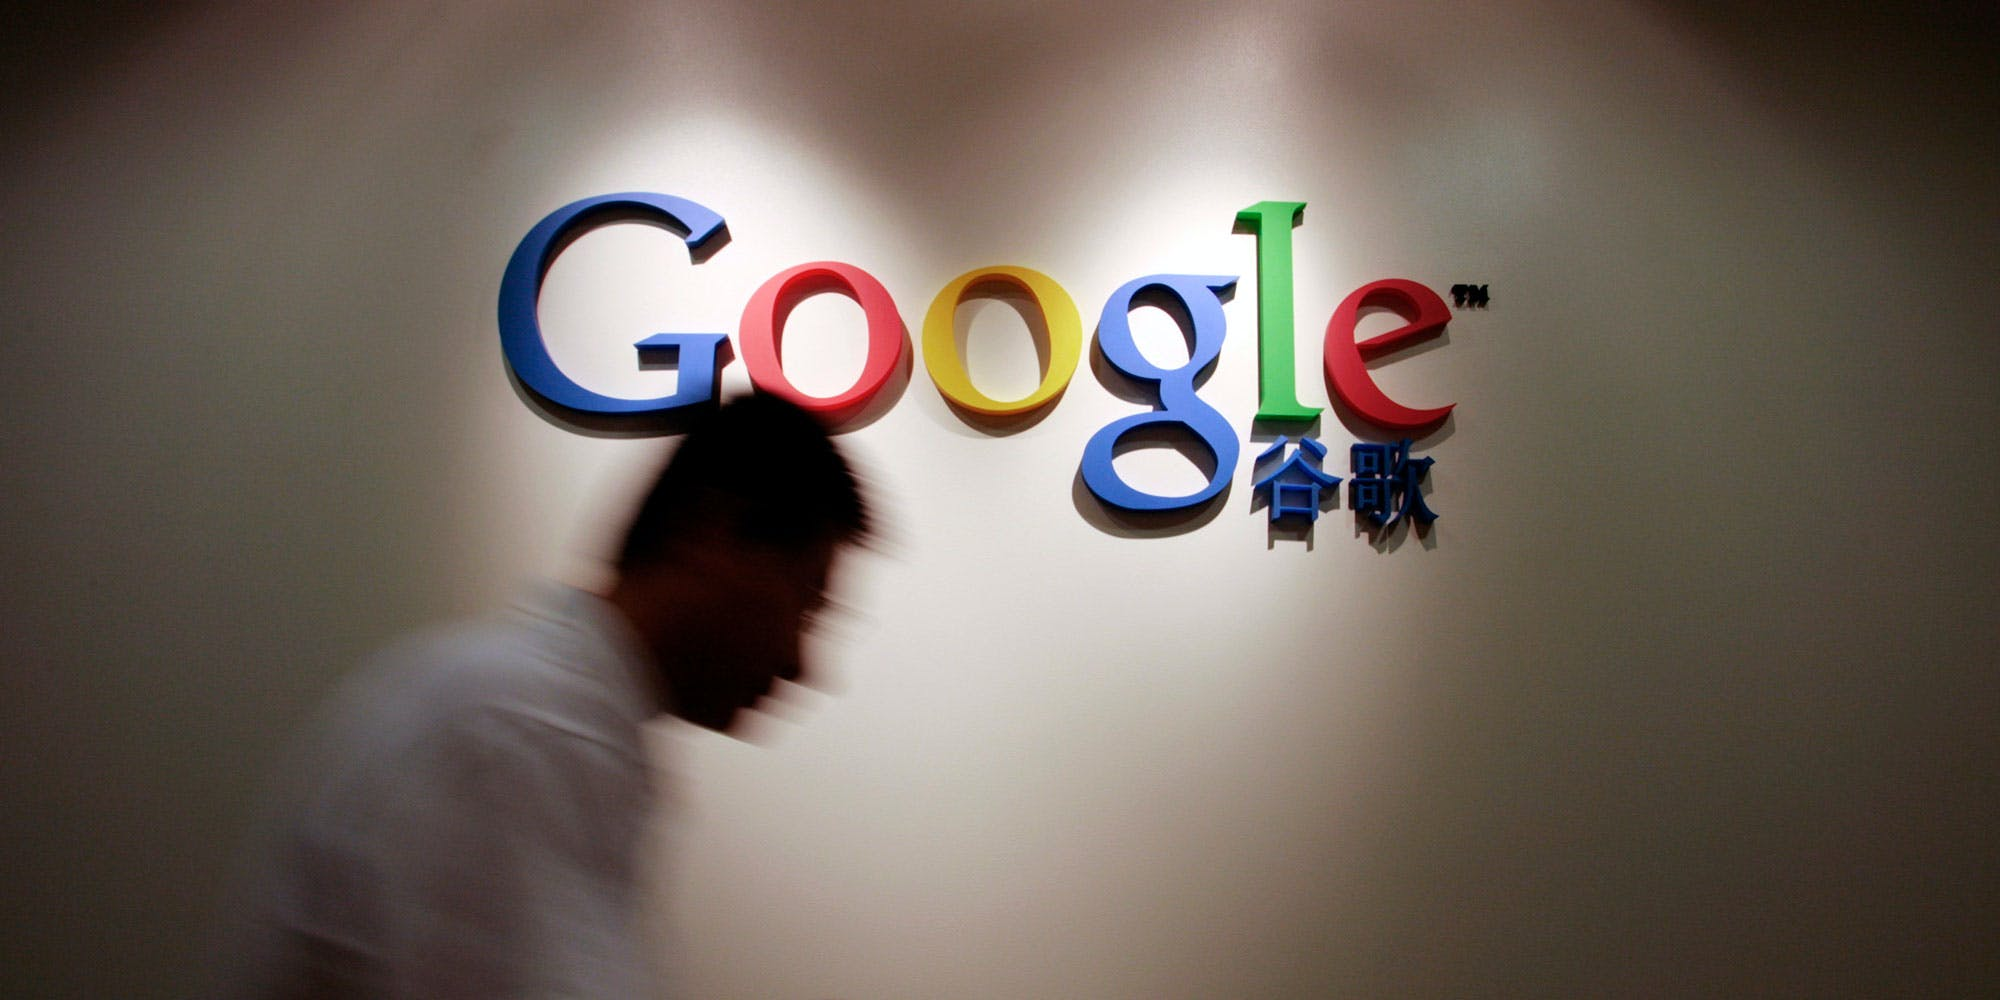 CHINA - AUGUST 15:  A member of Google Inc.'s China staff walks past the Google logo at their office in Shanghai on Wednesday, Aug. 15, 2007. When Thailand blocked Google Inc.'s YouTube Web site last year, the company dispatched deputy general counsel Nicole Wong to help restore access. In Bangkok, a sea of yellow shirts stunned her.  (Photo by Kevin Lee/Bloomberg via Getty Images)